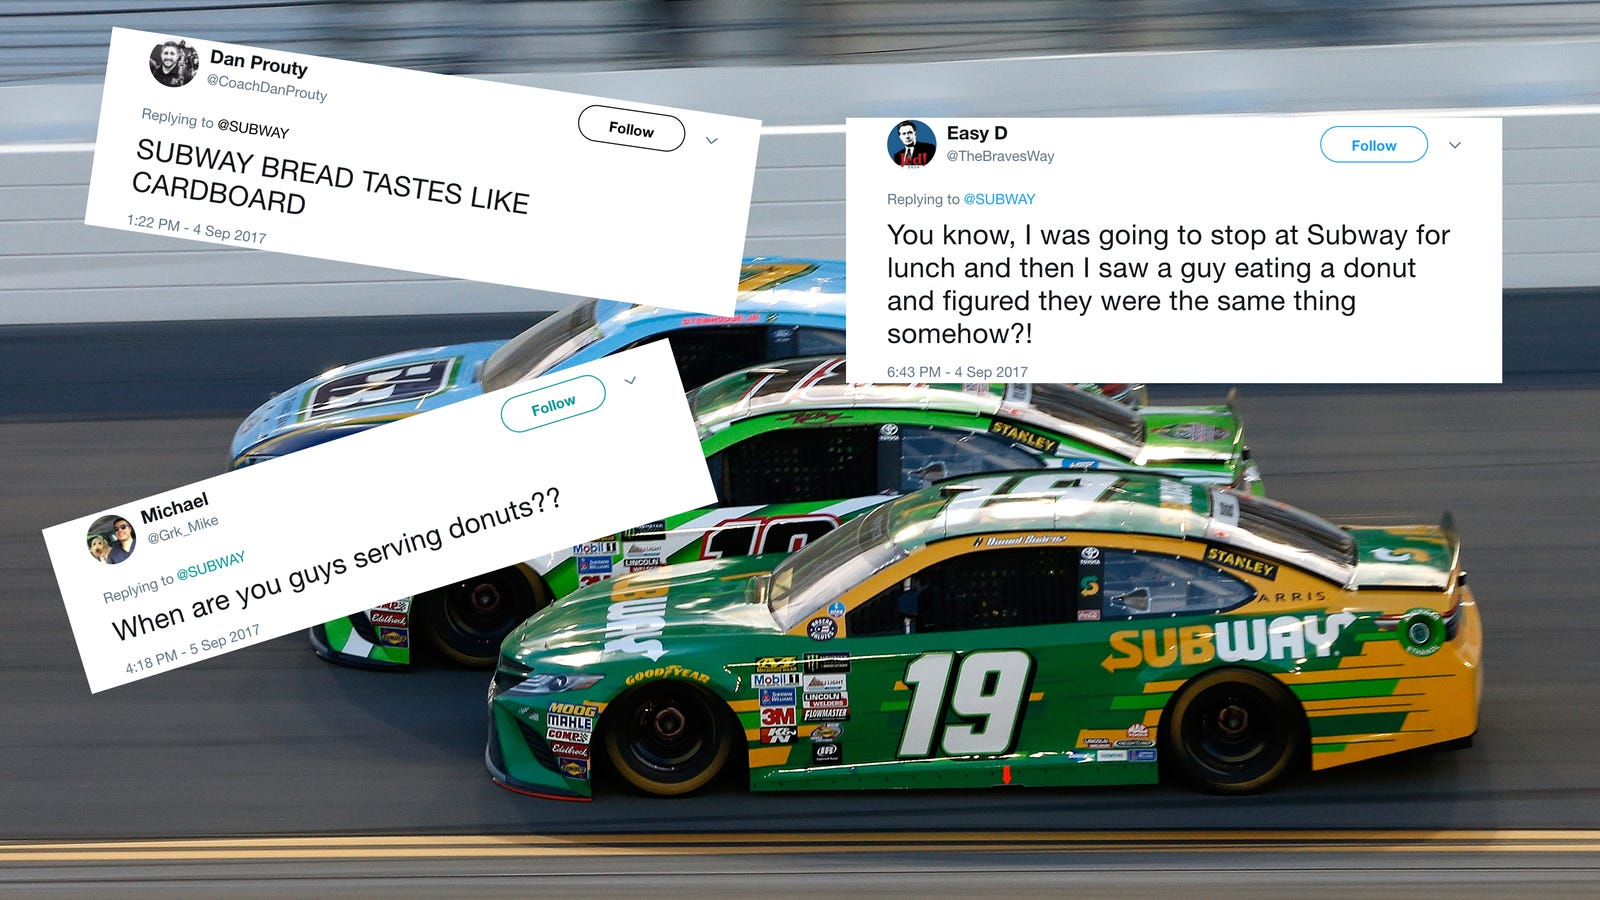 Angry nascar fans are roasting subway for dropping su rez s sponsorship over a donut